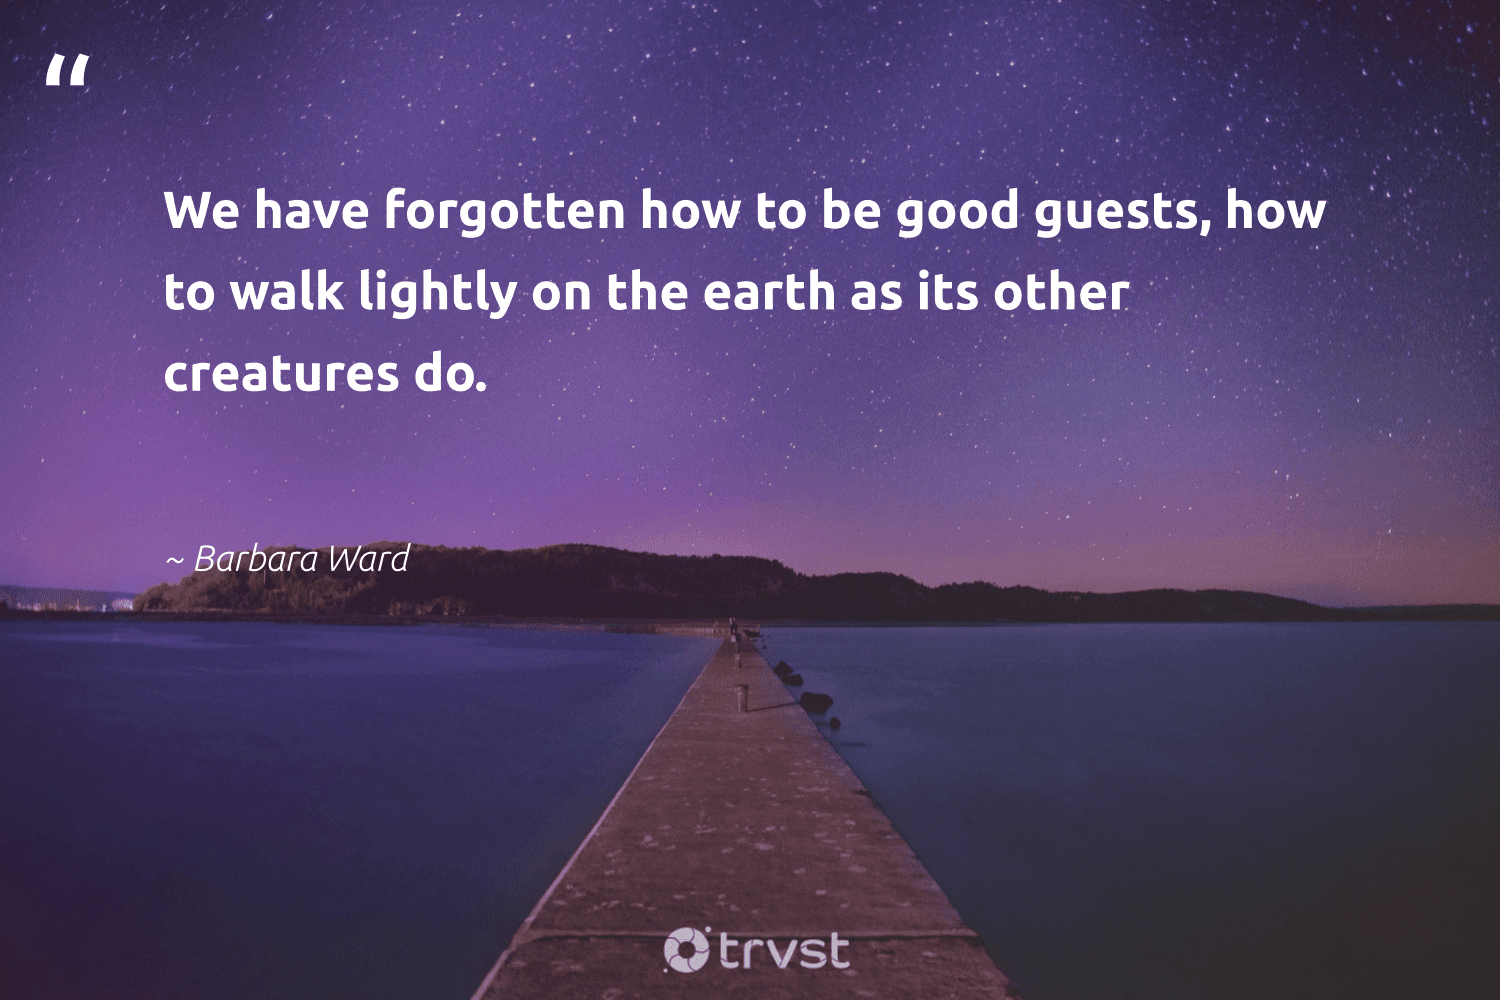 """""""We have forgotten how to be good guests, how to walk lightly on the earth as its other creatures do.""""  - Barbara Ward #trvst #quotes #environment #earth #sustainable #volunteer #impact #nature #climatechange #green #bethechange #conservation"""